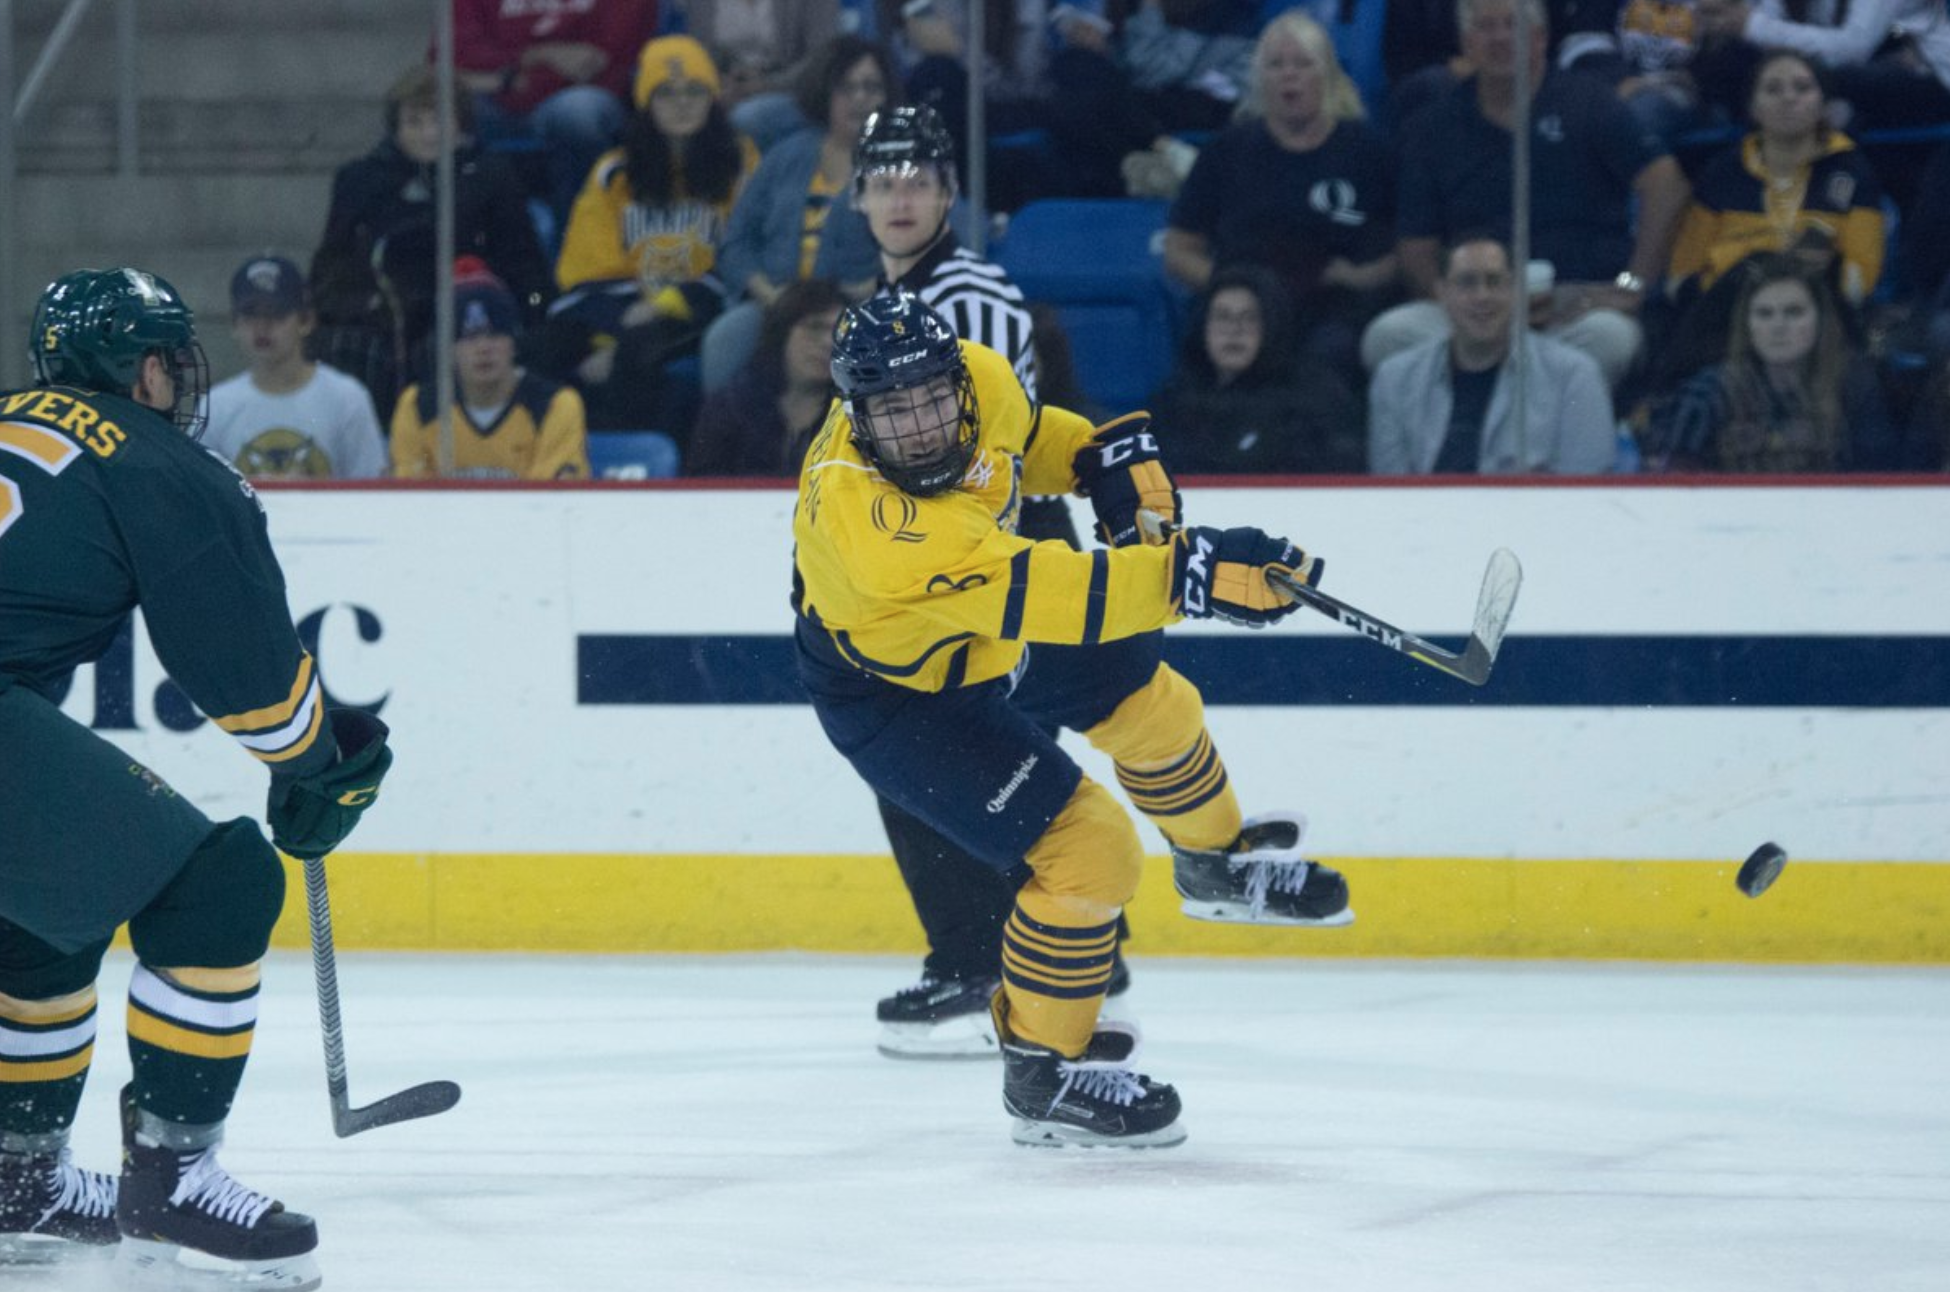 Quinnipiac men's ice hockey swept by UMass Amherst